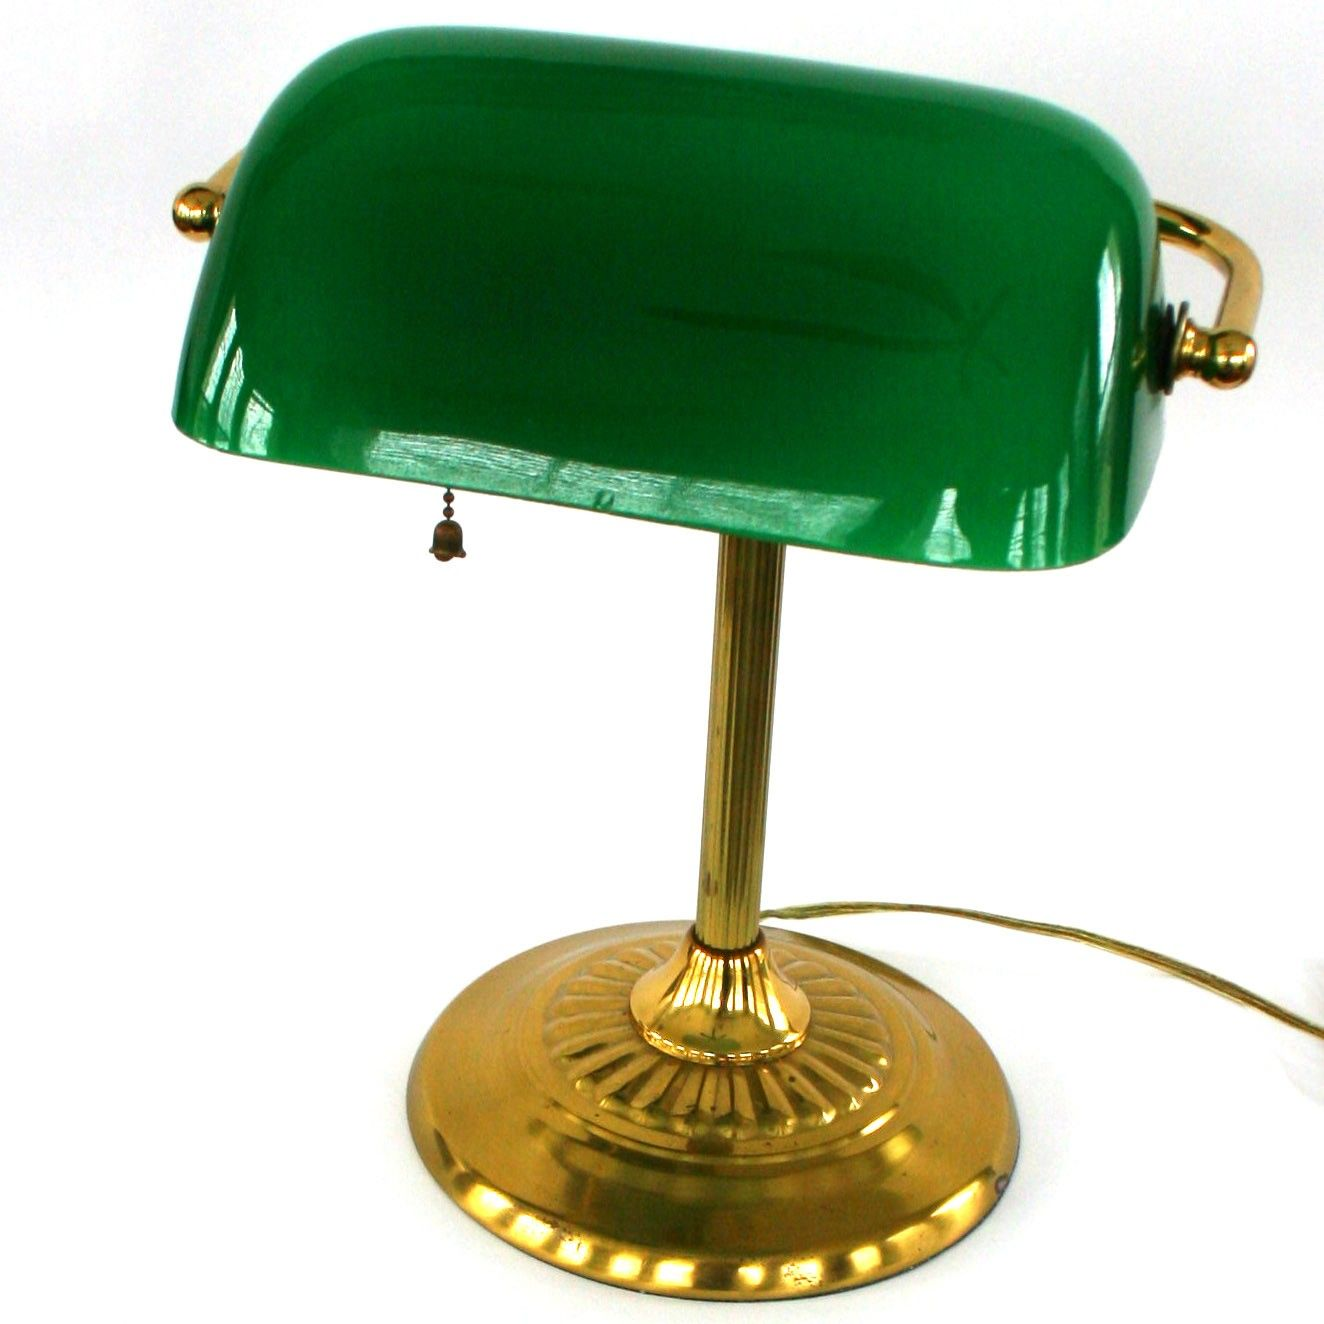 Vintage bankers desk lamp - Old School Banker Lamp